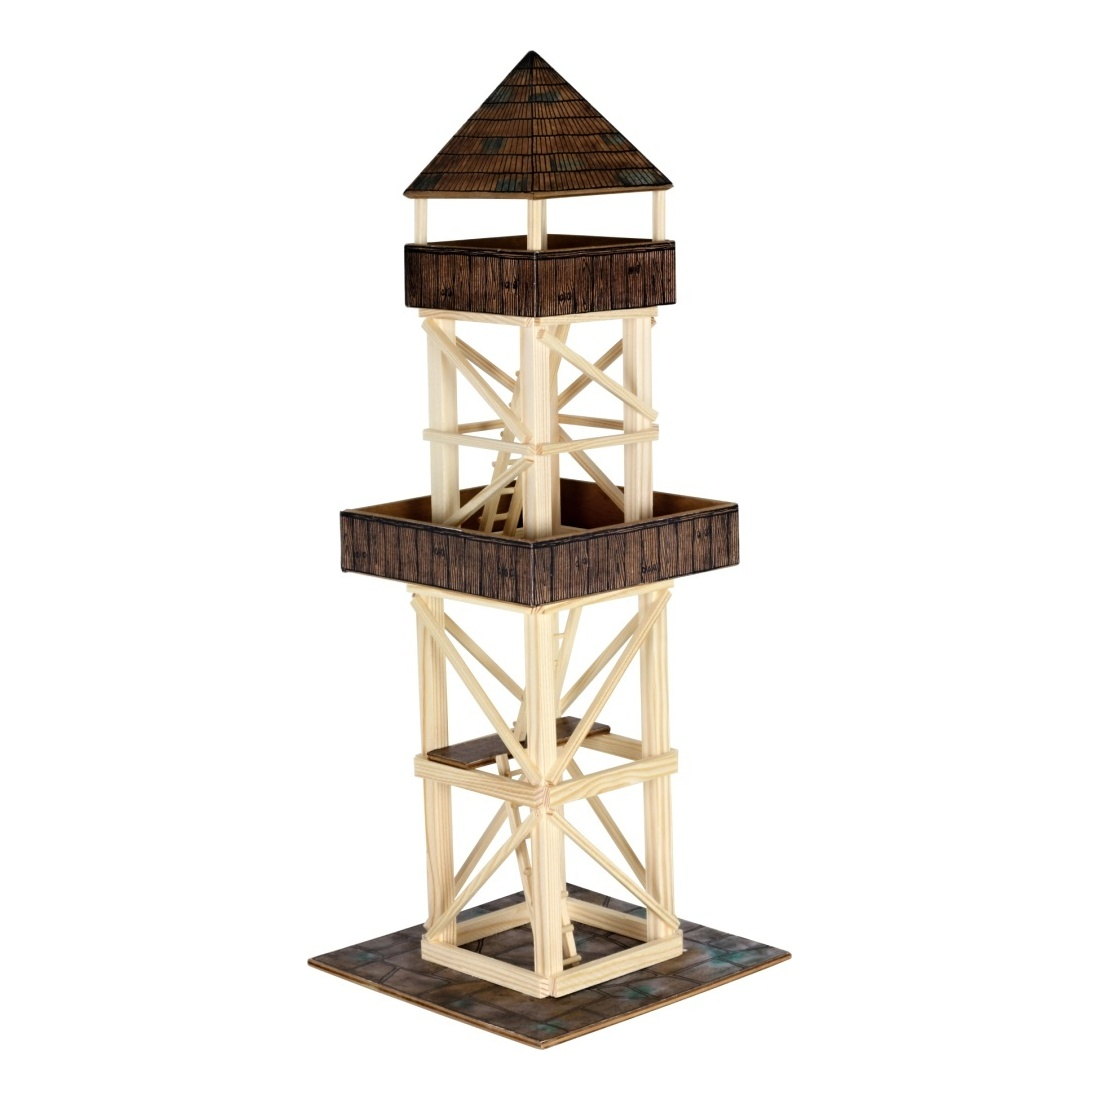 Made Hobby Europe Archivy In Kit Wooden Walachia Toys HIeE2WD9Y